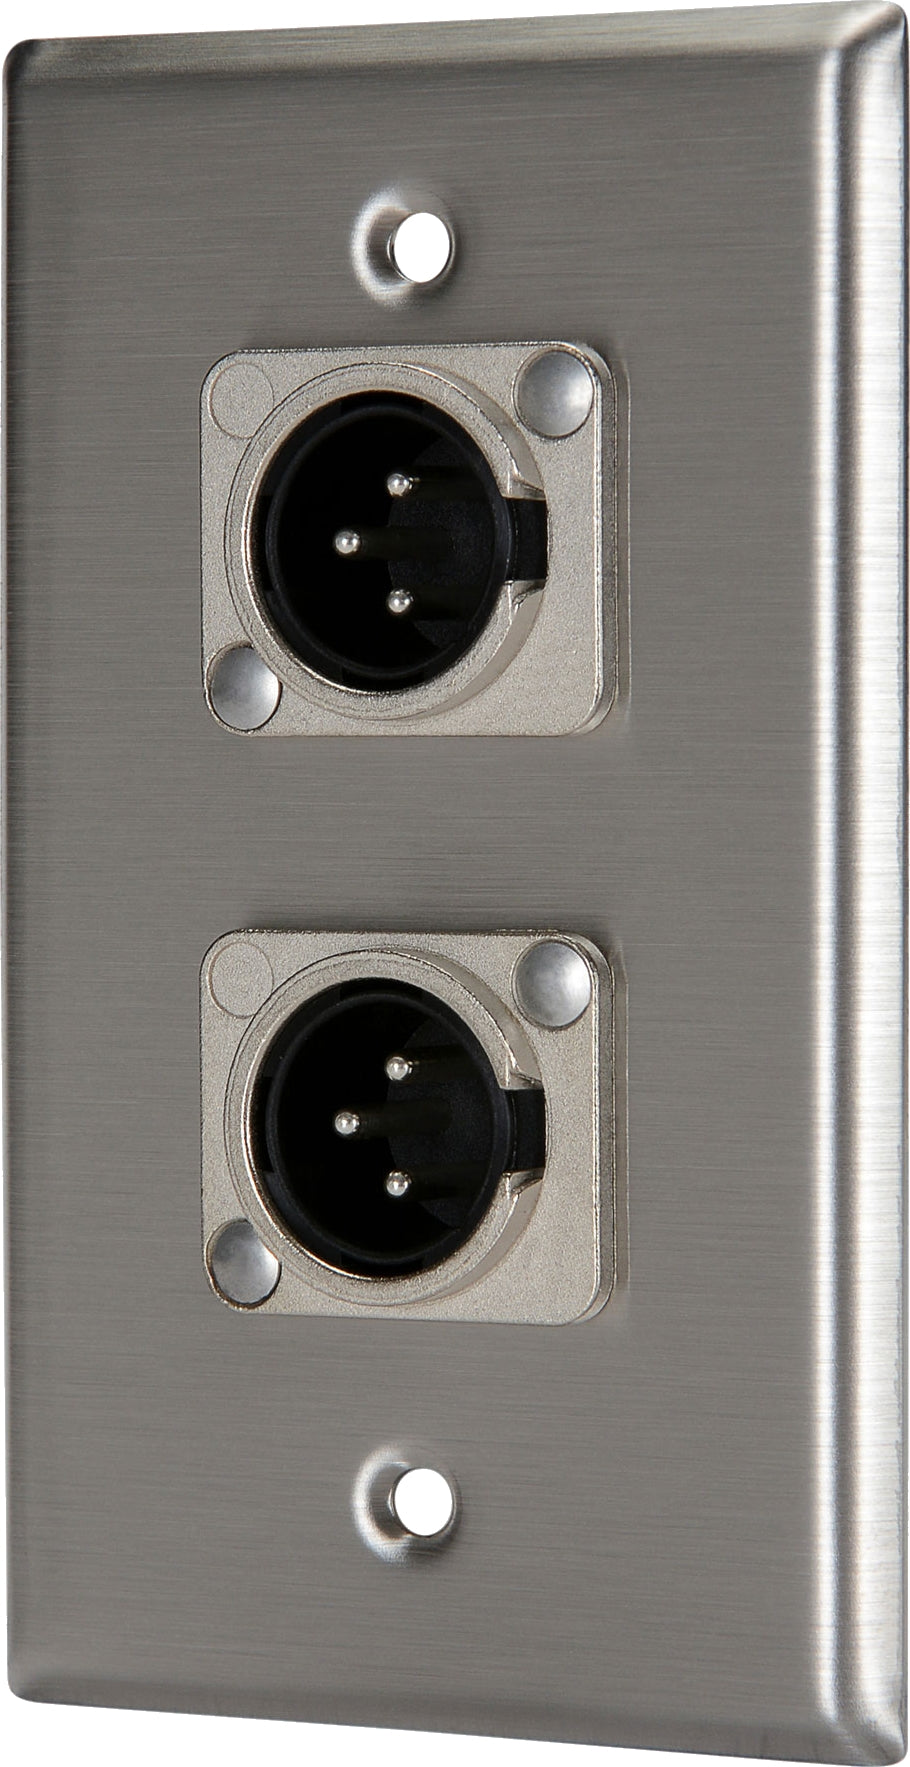 07-6072-02 Stainless Steel Wall Plate with 2*XLR Male